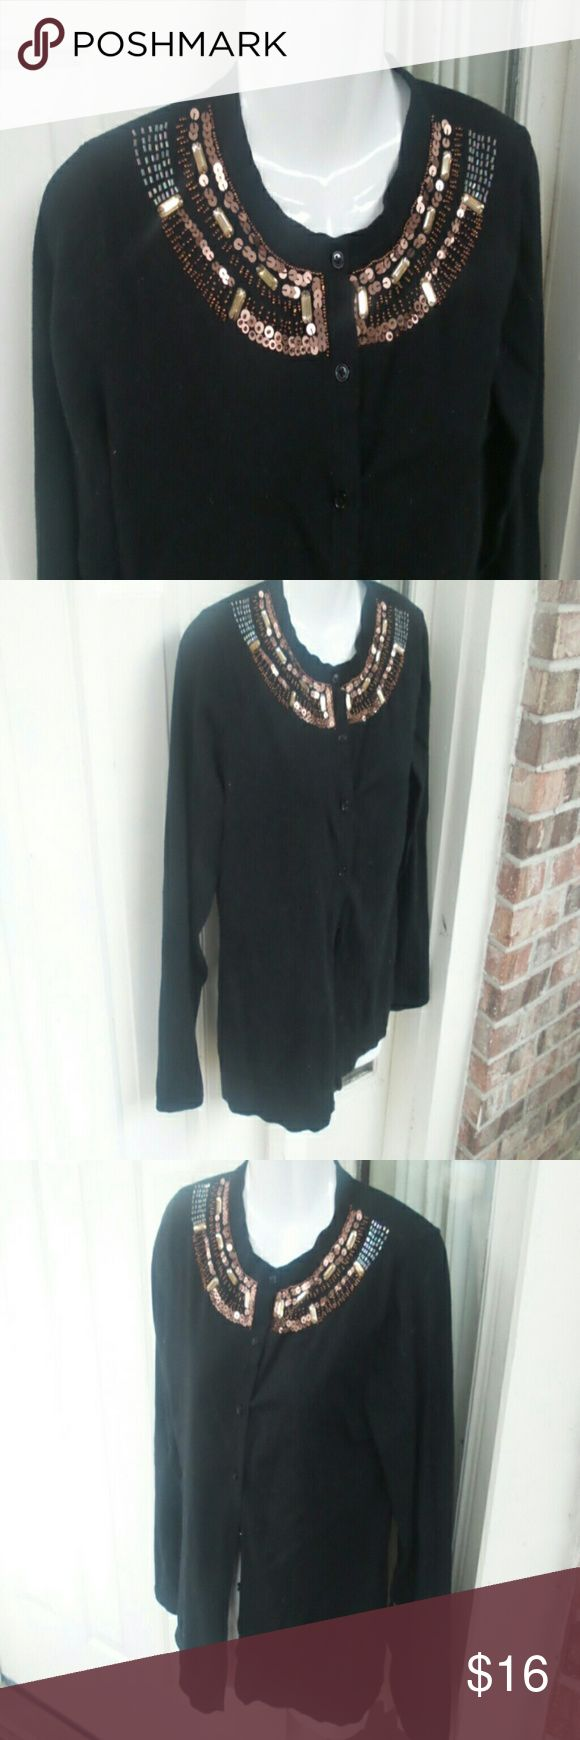 Covington beaded and sequin cardigan MP Covington beaded and sequin cardigan  Medium petite Great preowned condition Covington Sweaters Cardigans